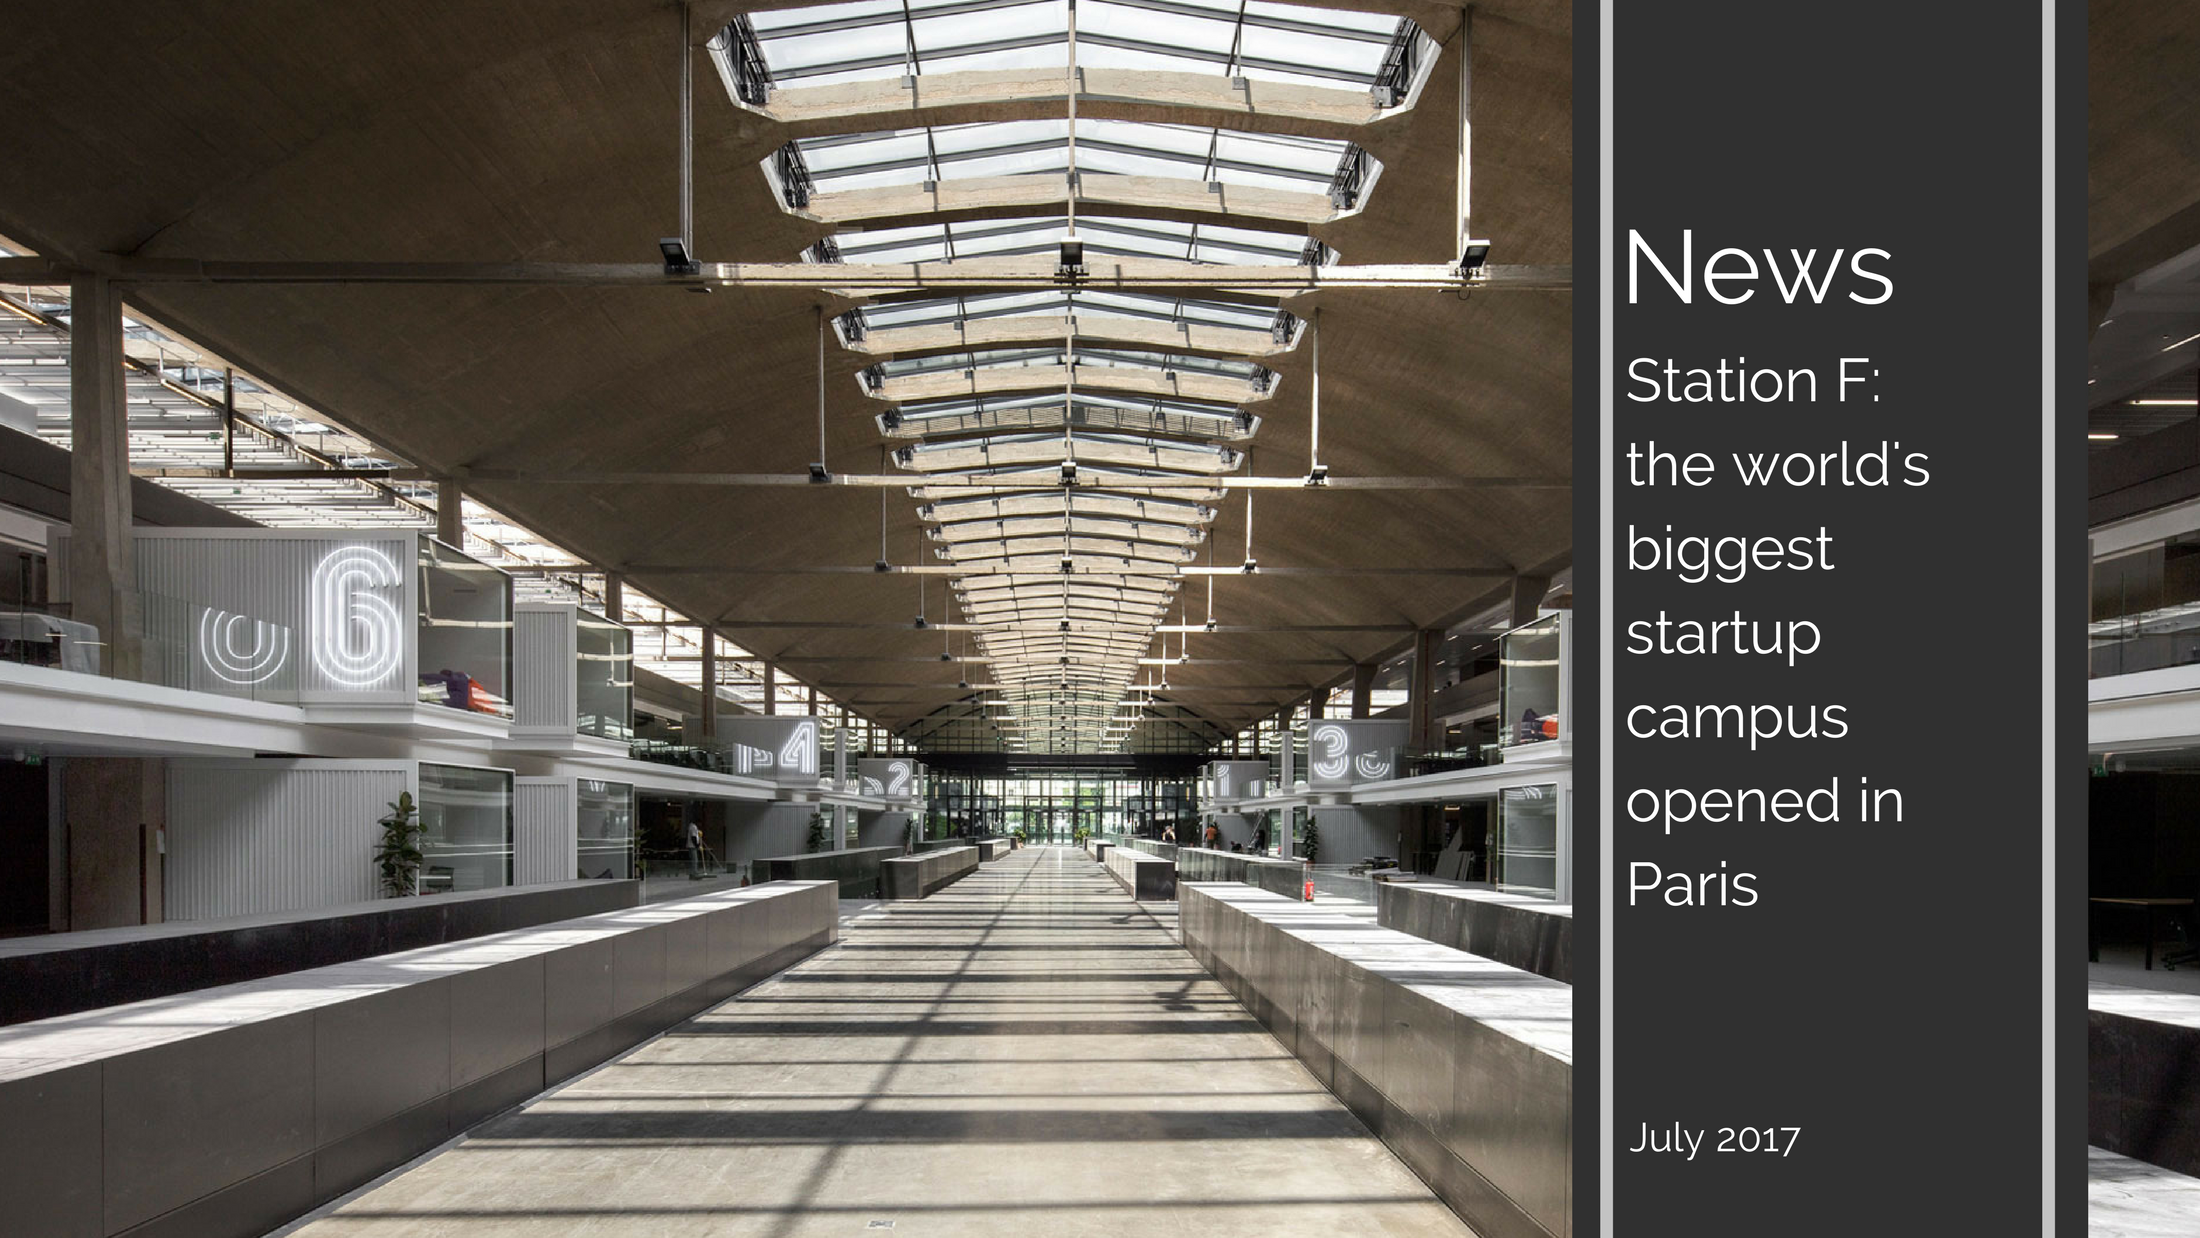 3 1 - Station F: the world's biggest startup campus opened in Paris